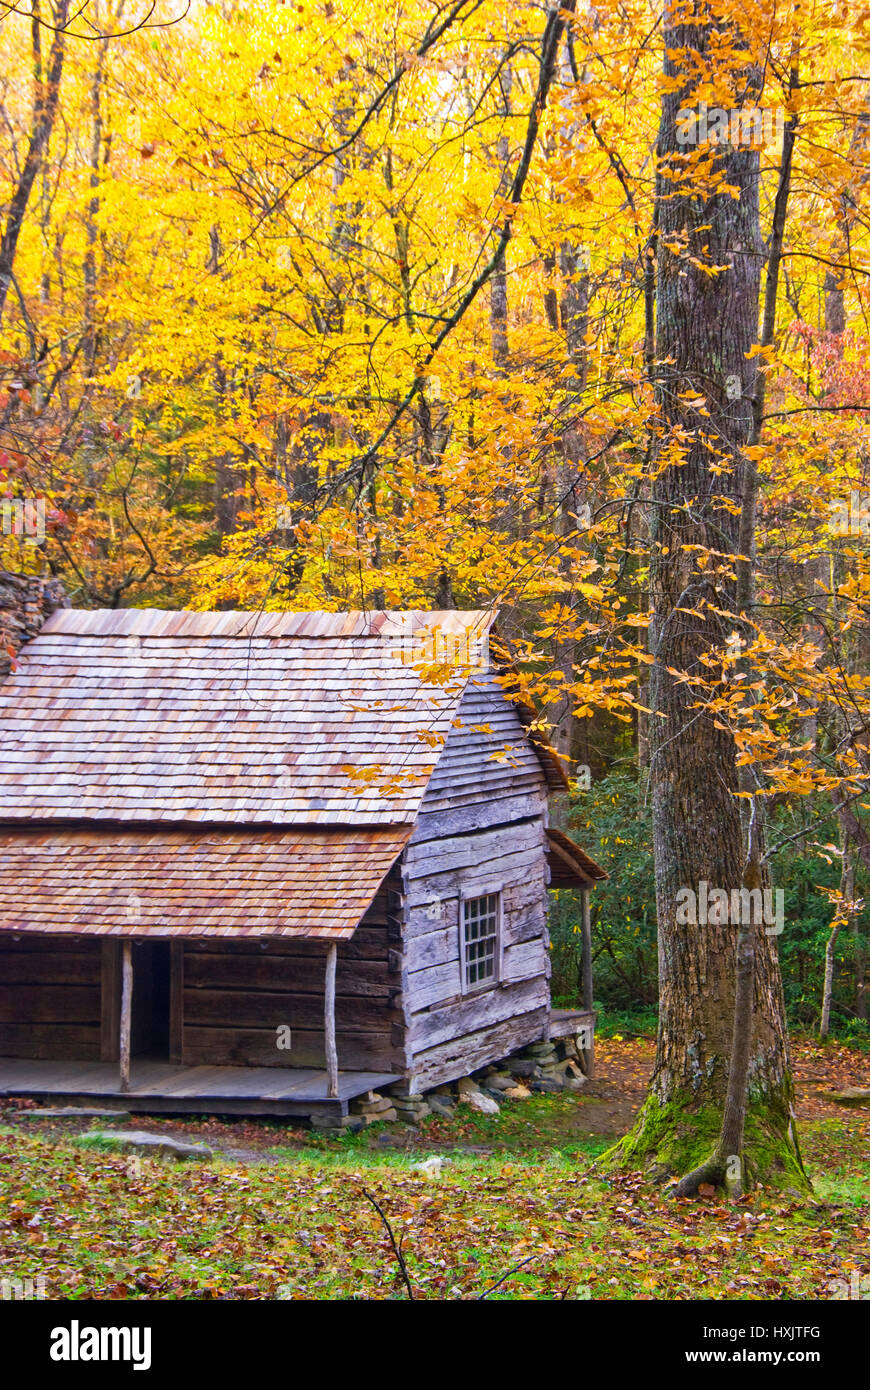 Log cabin in Smoky Mountains of Tennessee. Stock Photo